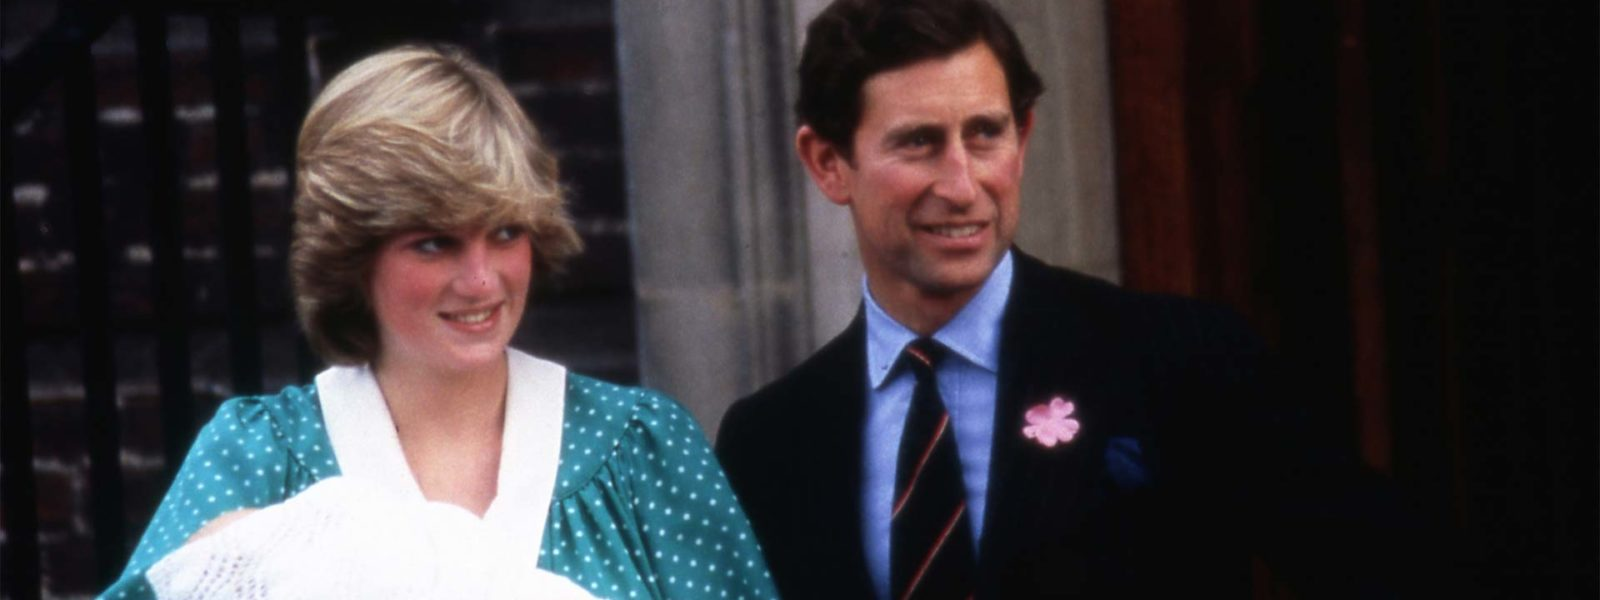 BBCA_RoyalDocs_Charles-Diana-First-Decade